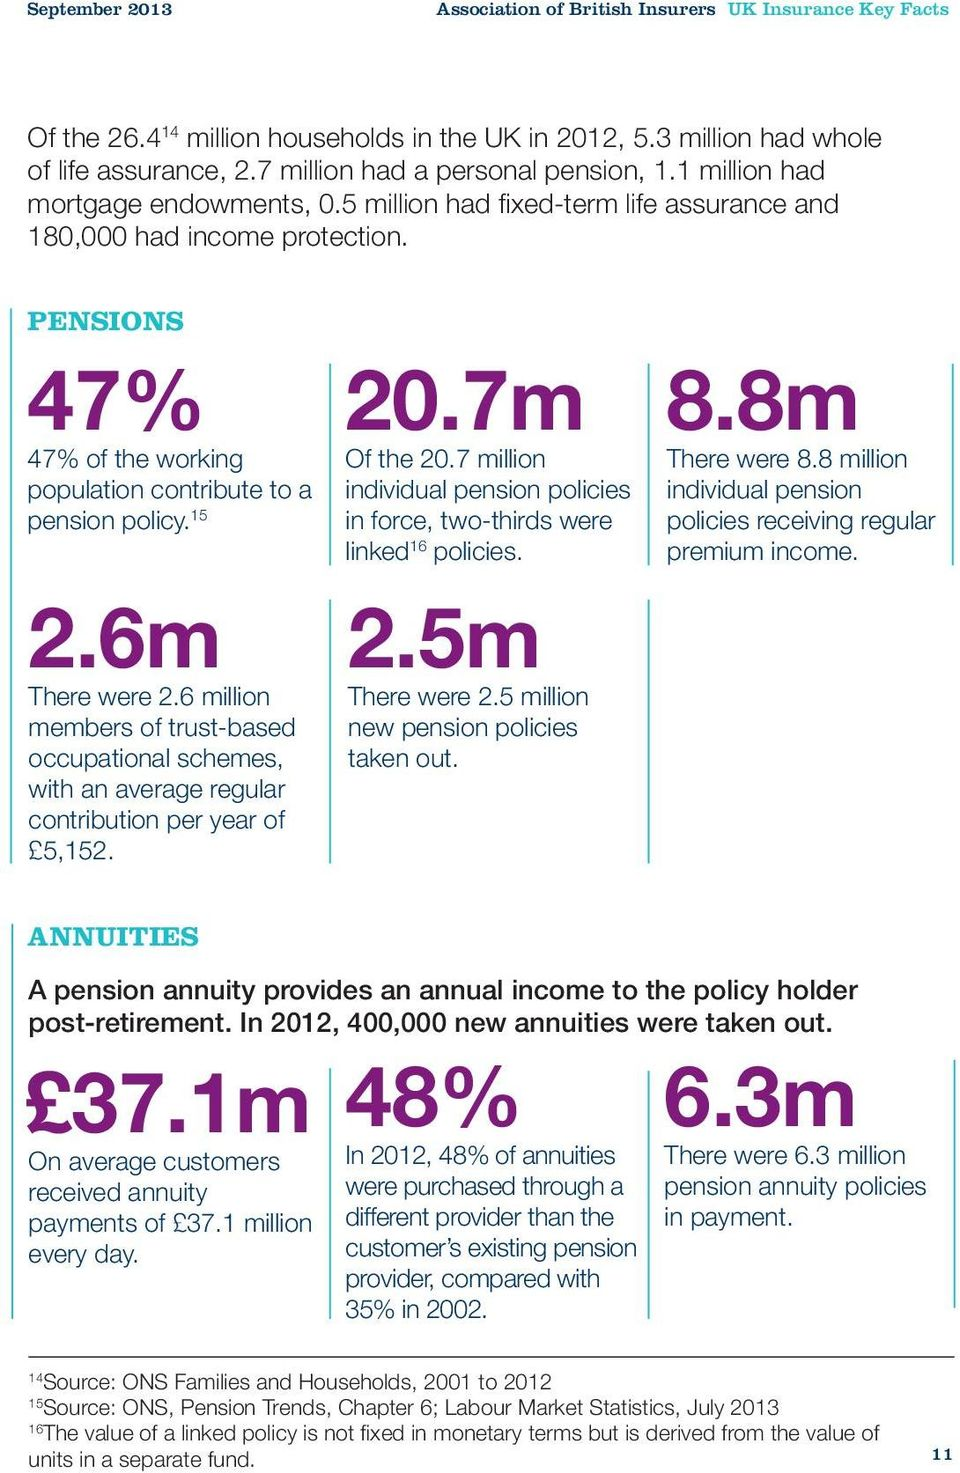 PENSIONS 47% 47% of the working population contribute to a pension policy. 15 2.6m There were 2.